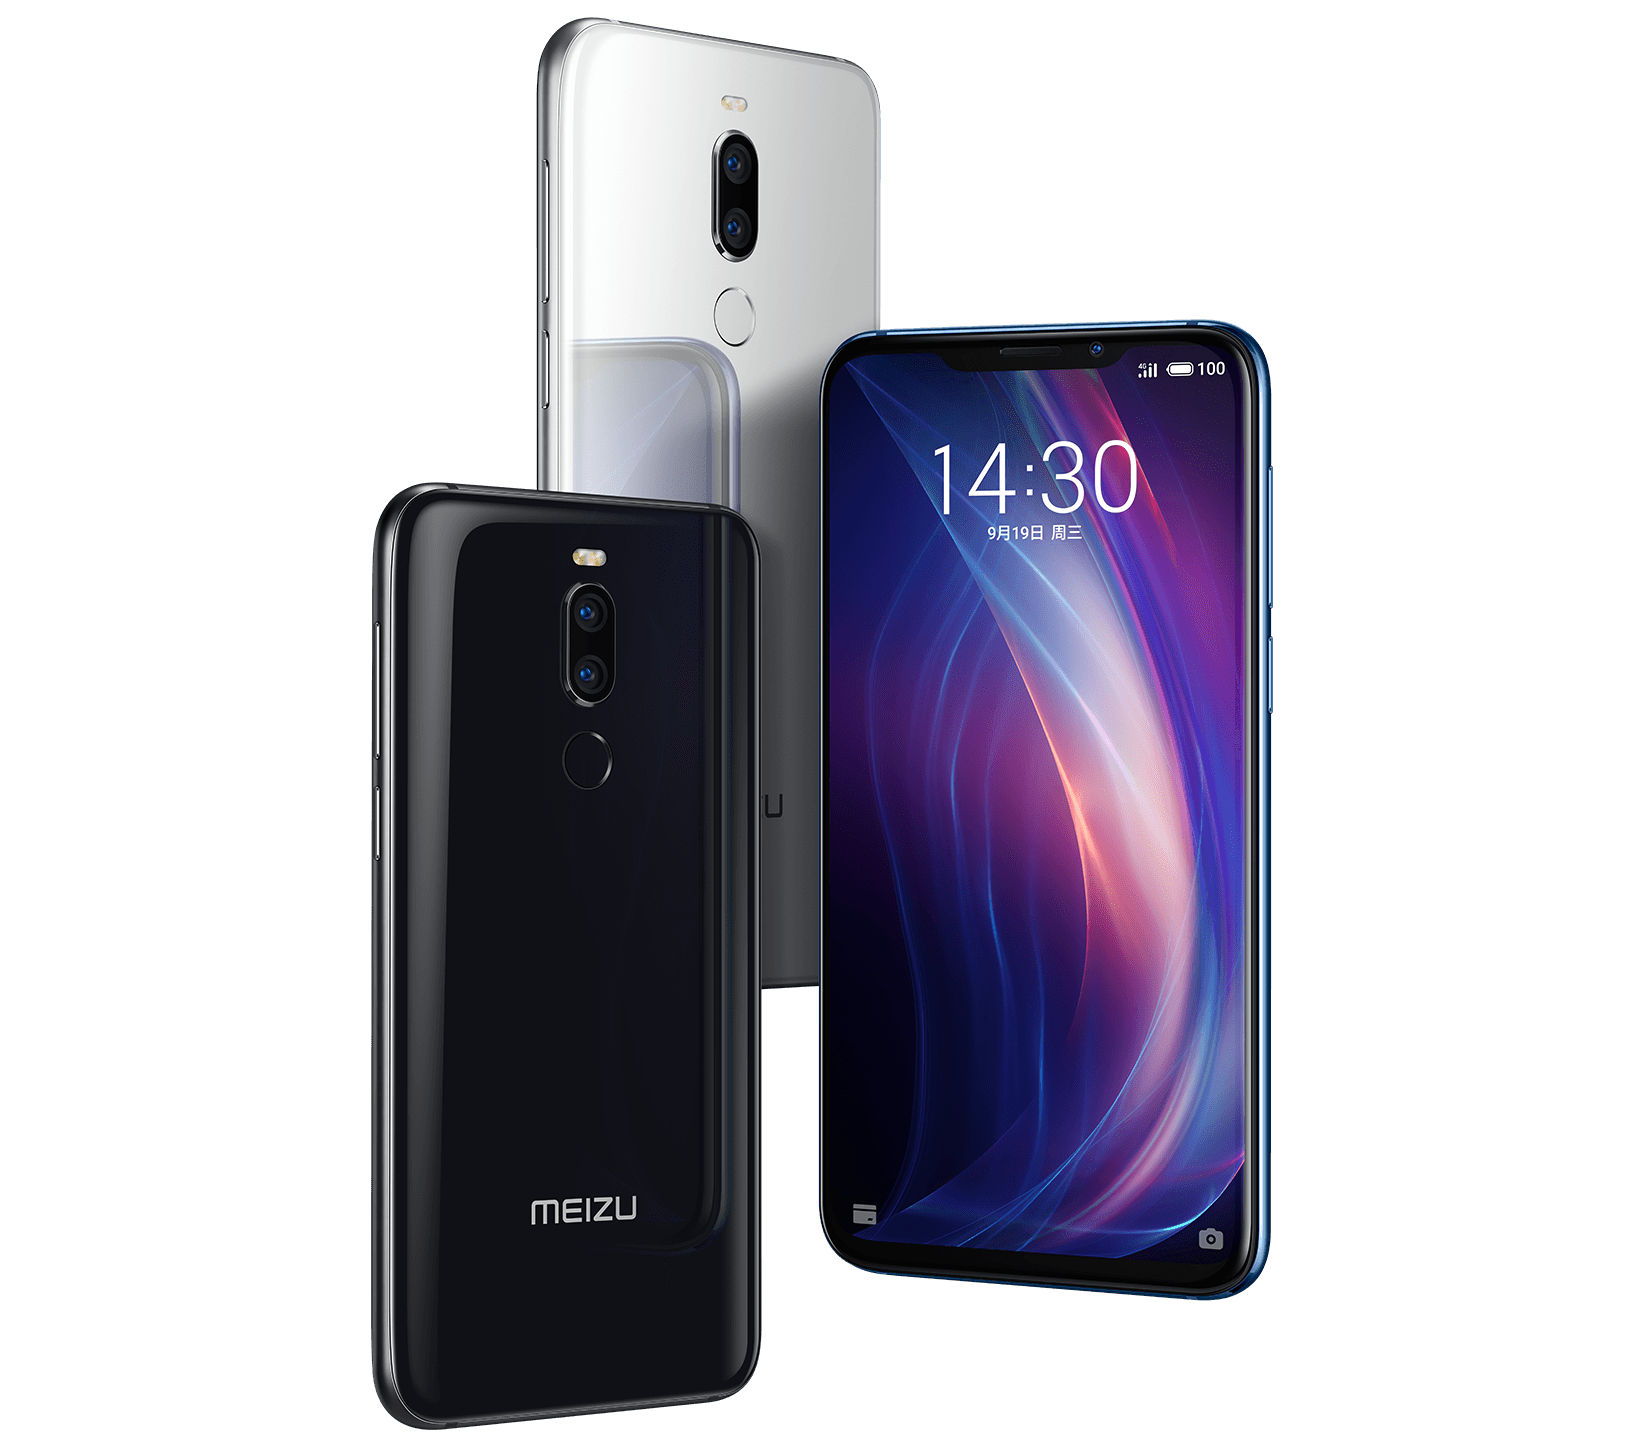 Meizu X8 specifications